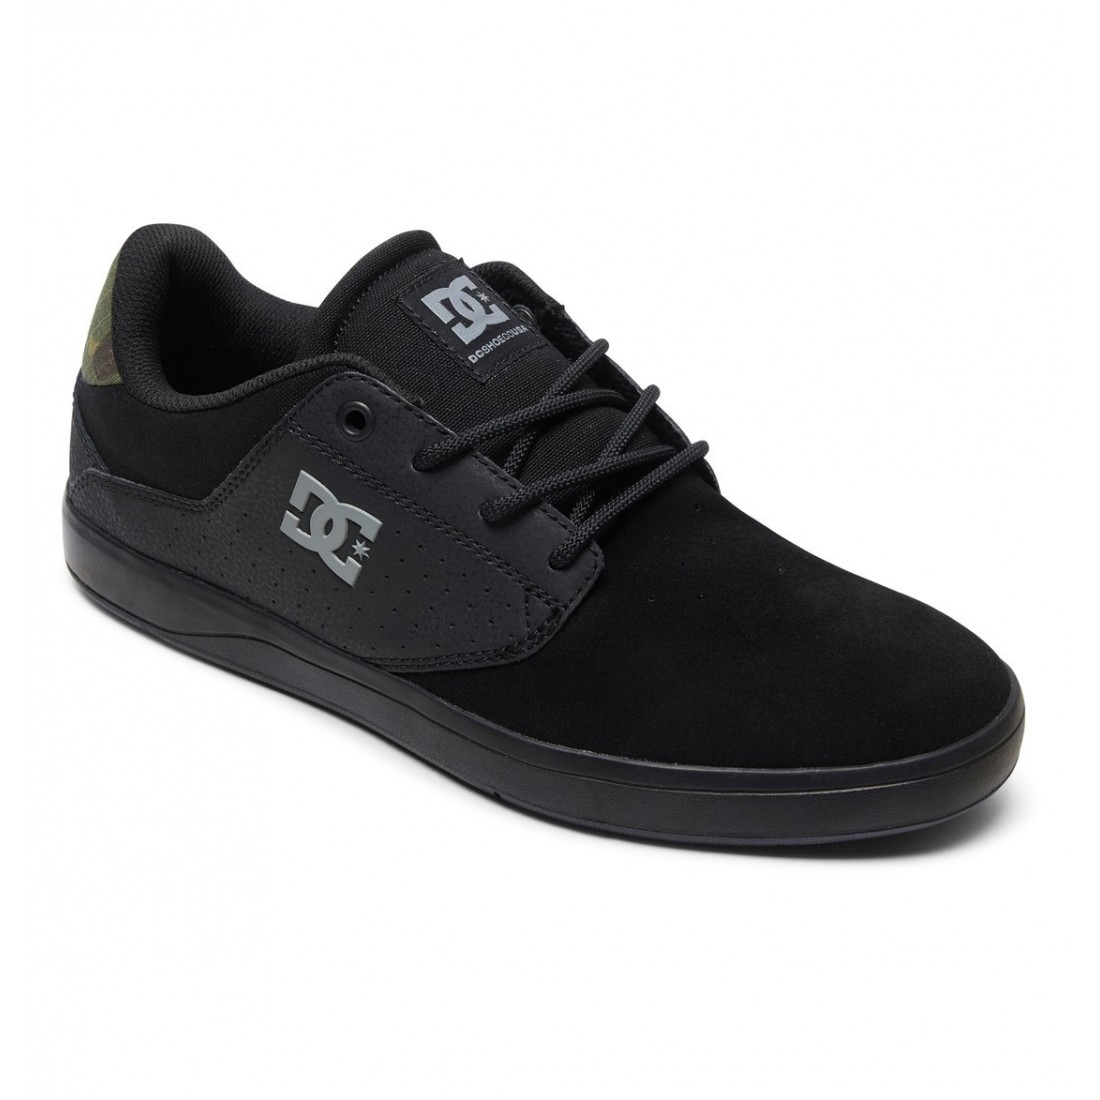 PLAZA TC SE black camo